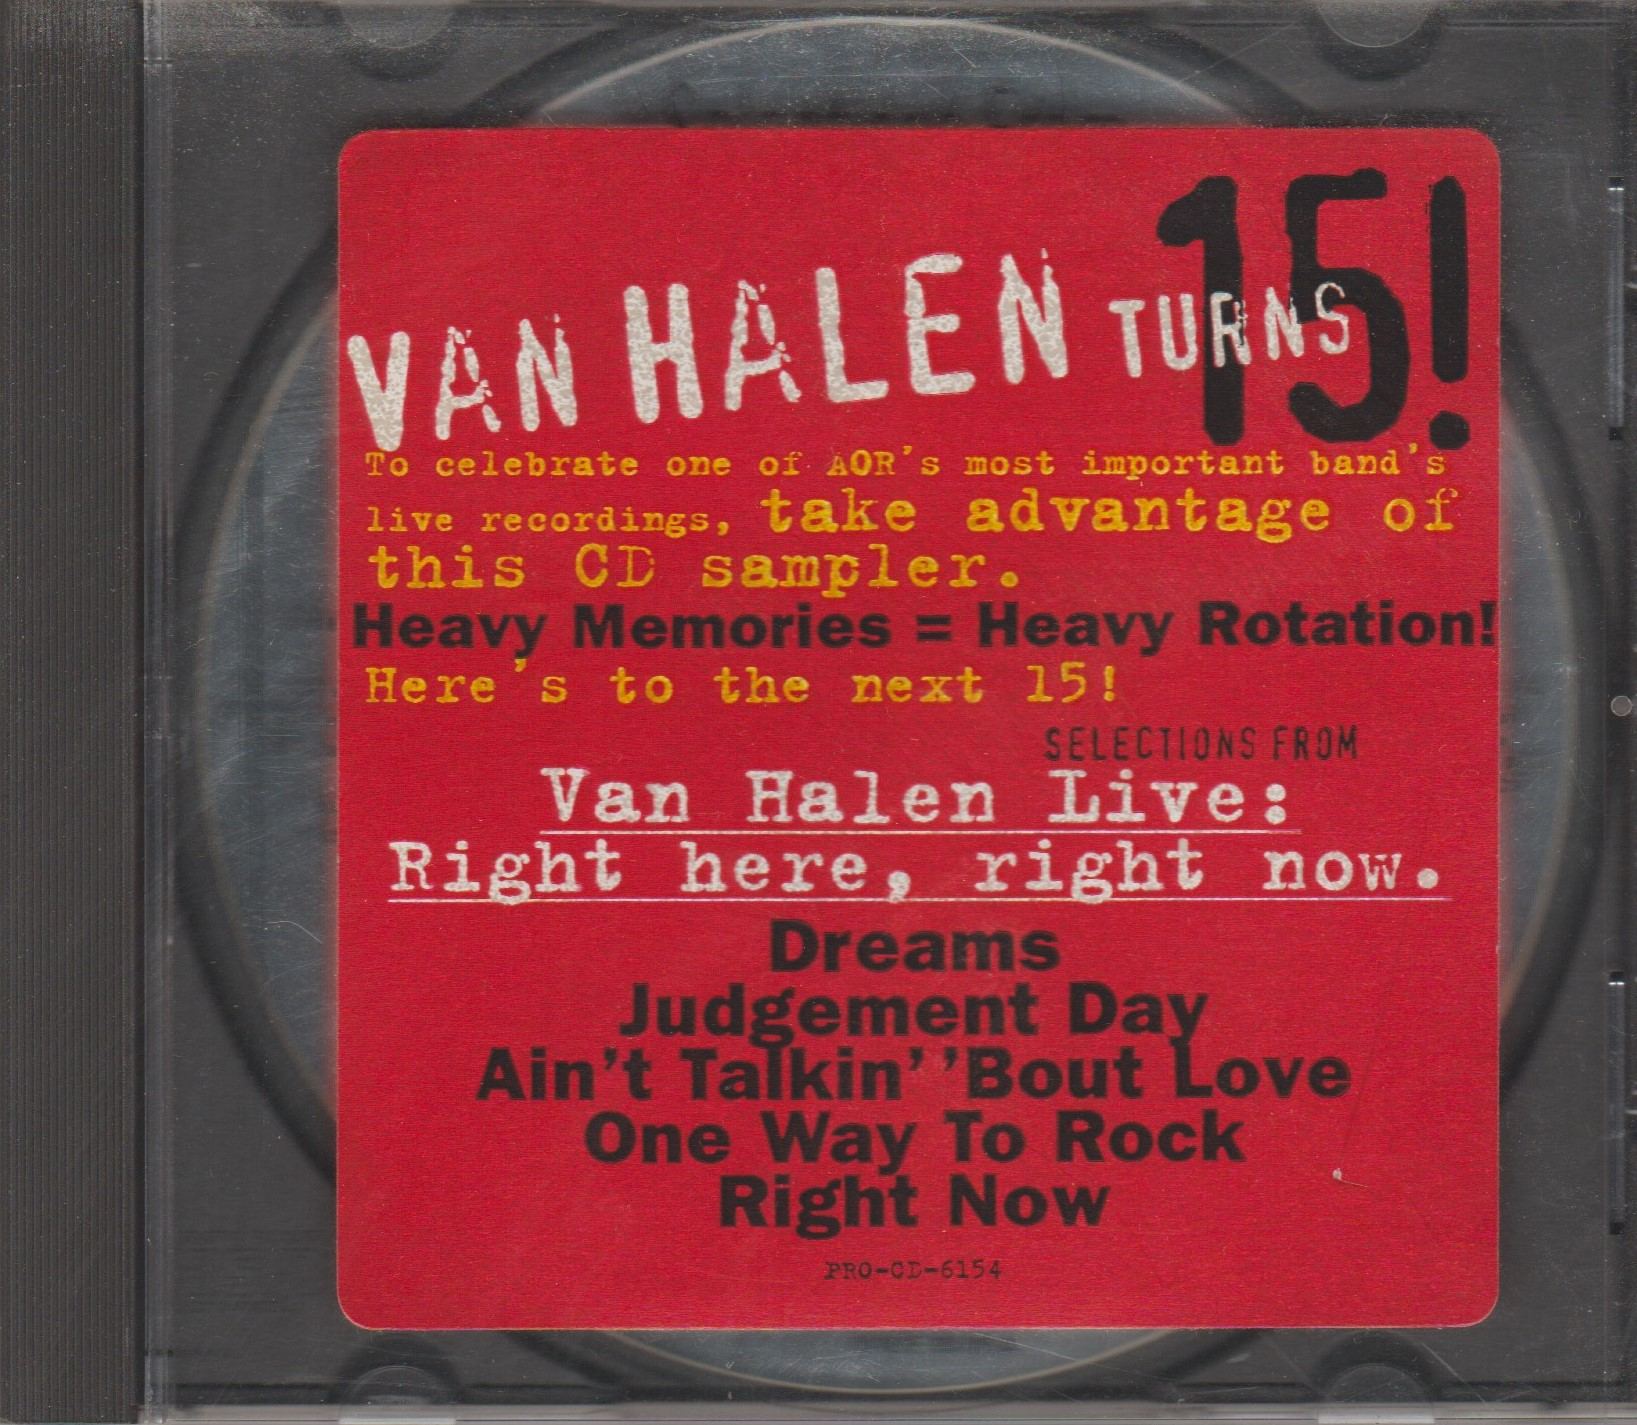 Review Van Halen Selections From Live Right Here Right Now 1993 Promo Ep Van Halen Turns 15 Mikeladano Com Don't forget to let us know if we got it right! 1993 promo ep van halen turns